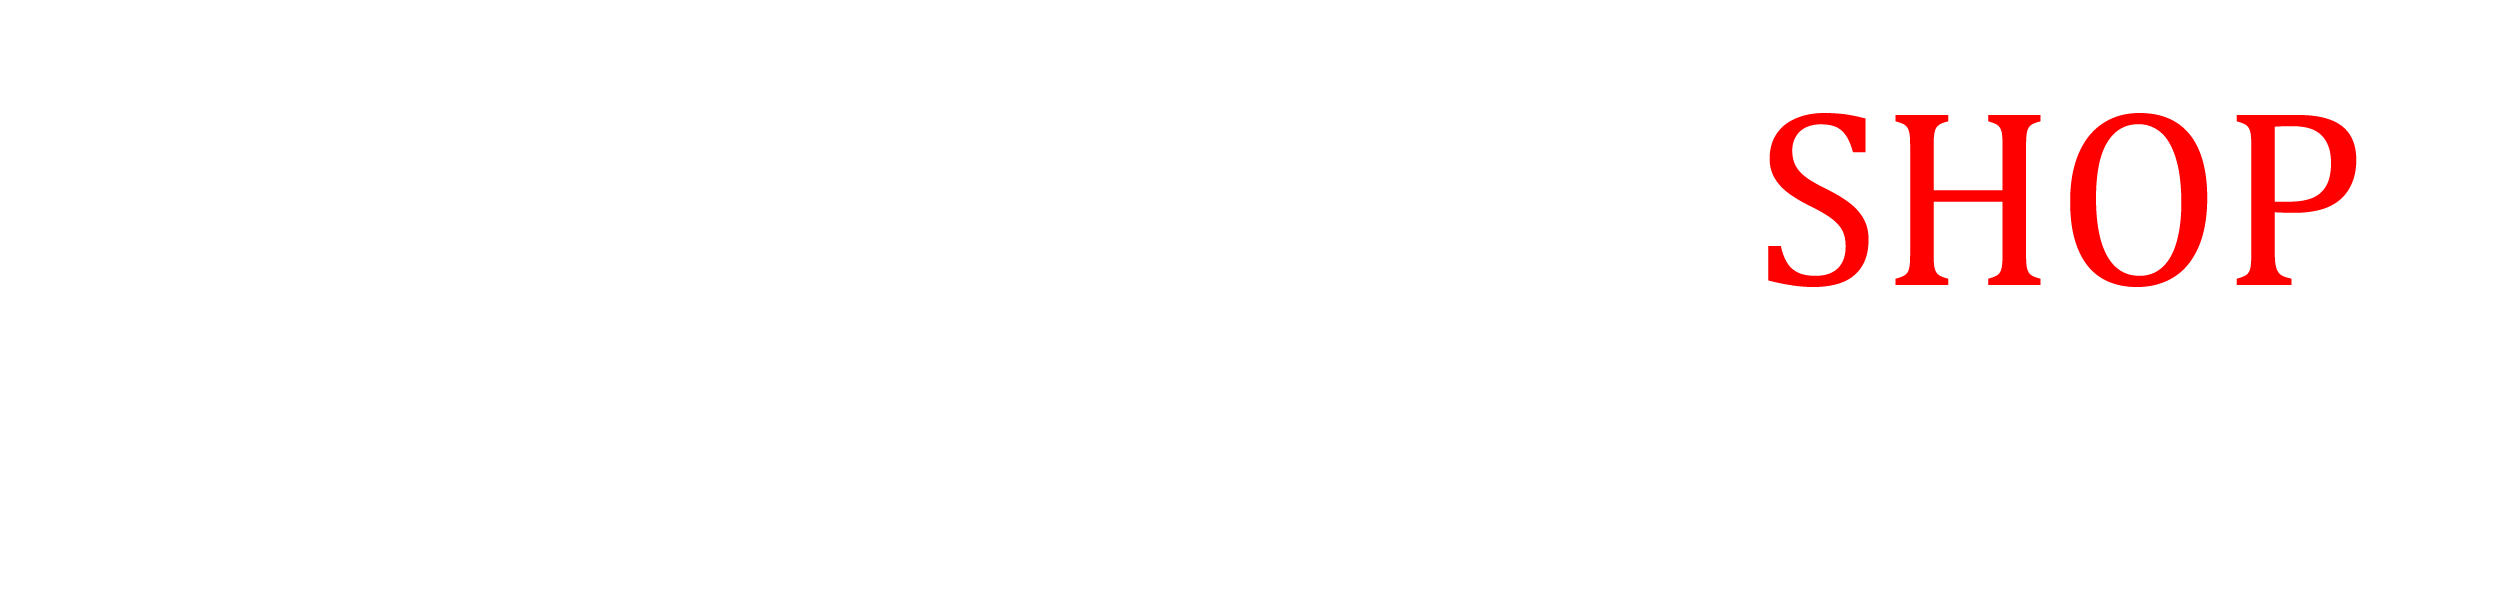 Tonios Tabaco Shop